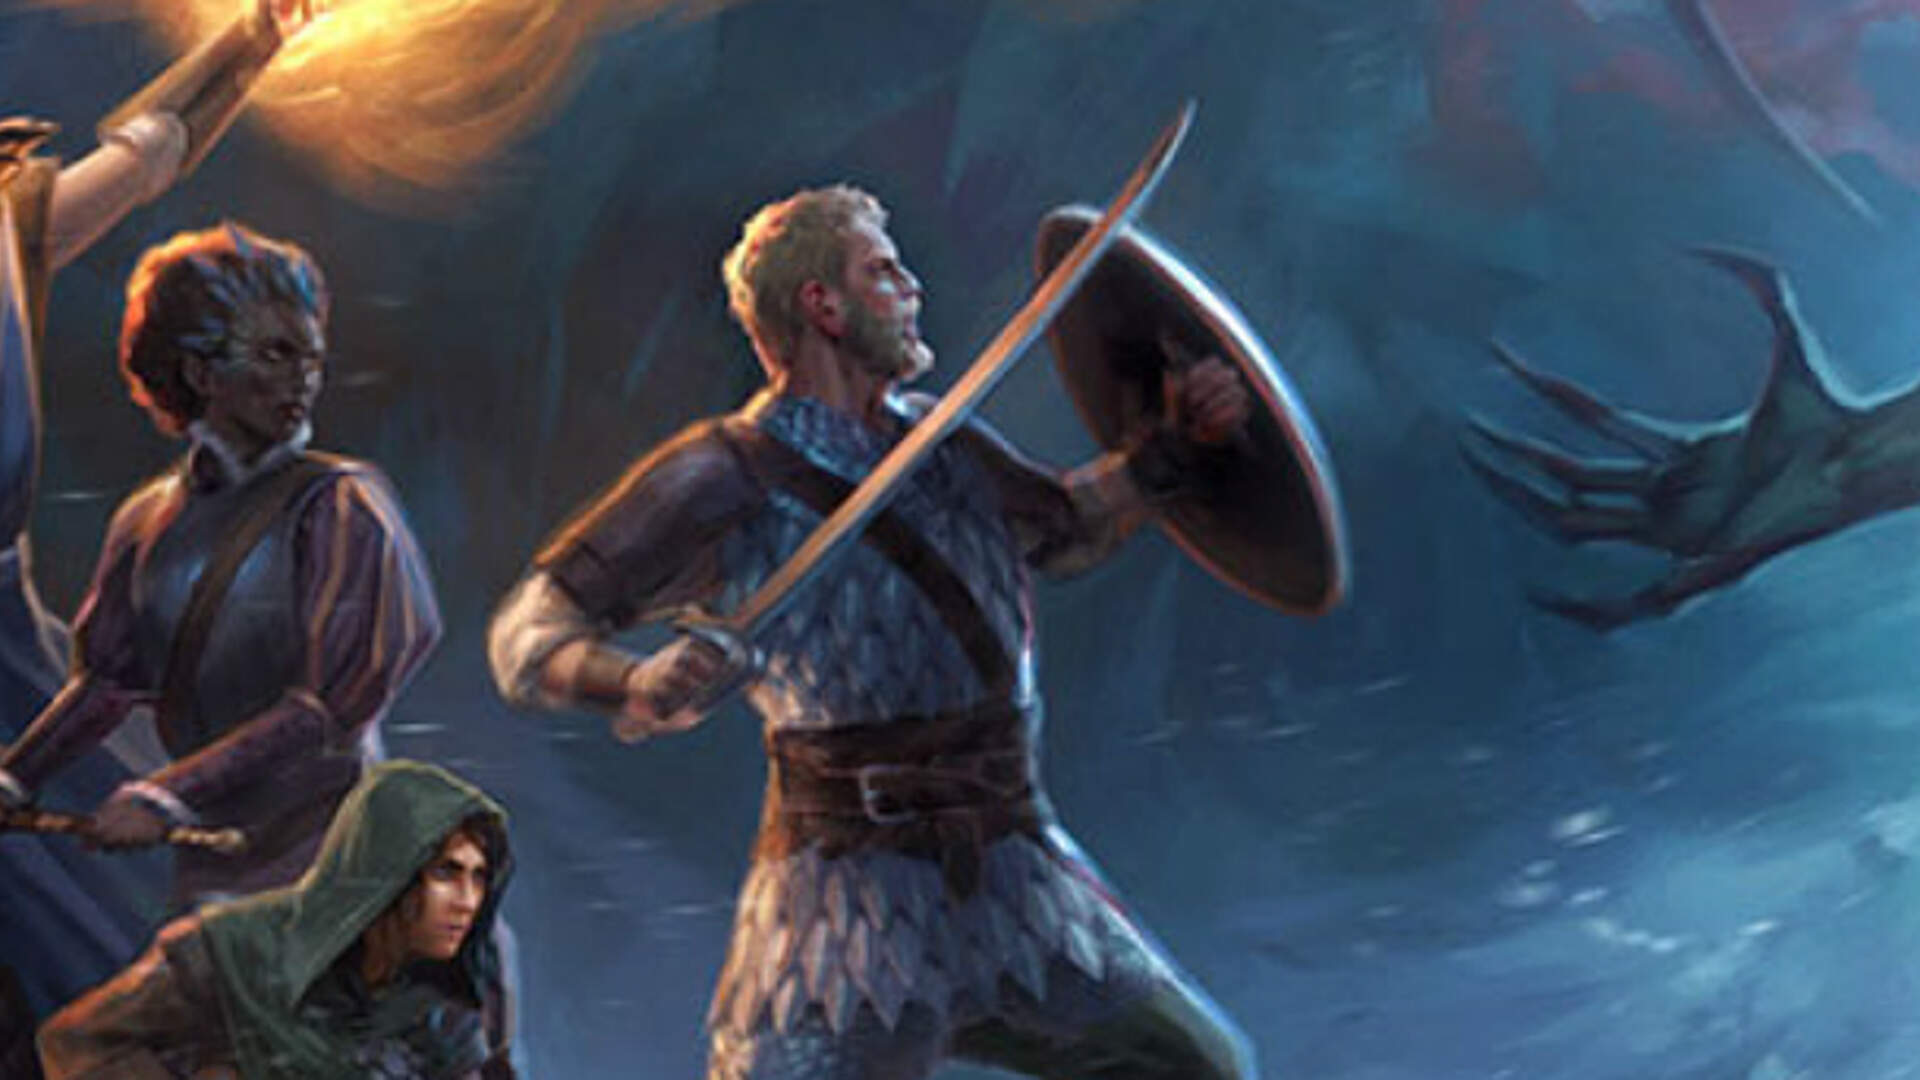 Pillars of Eternity 2's First DLC Coming This August